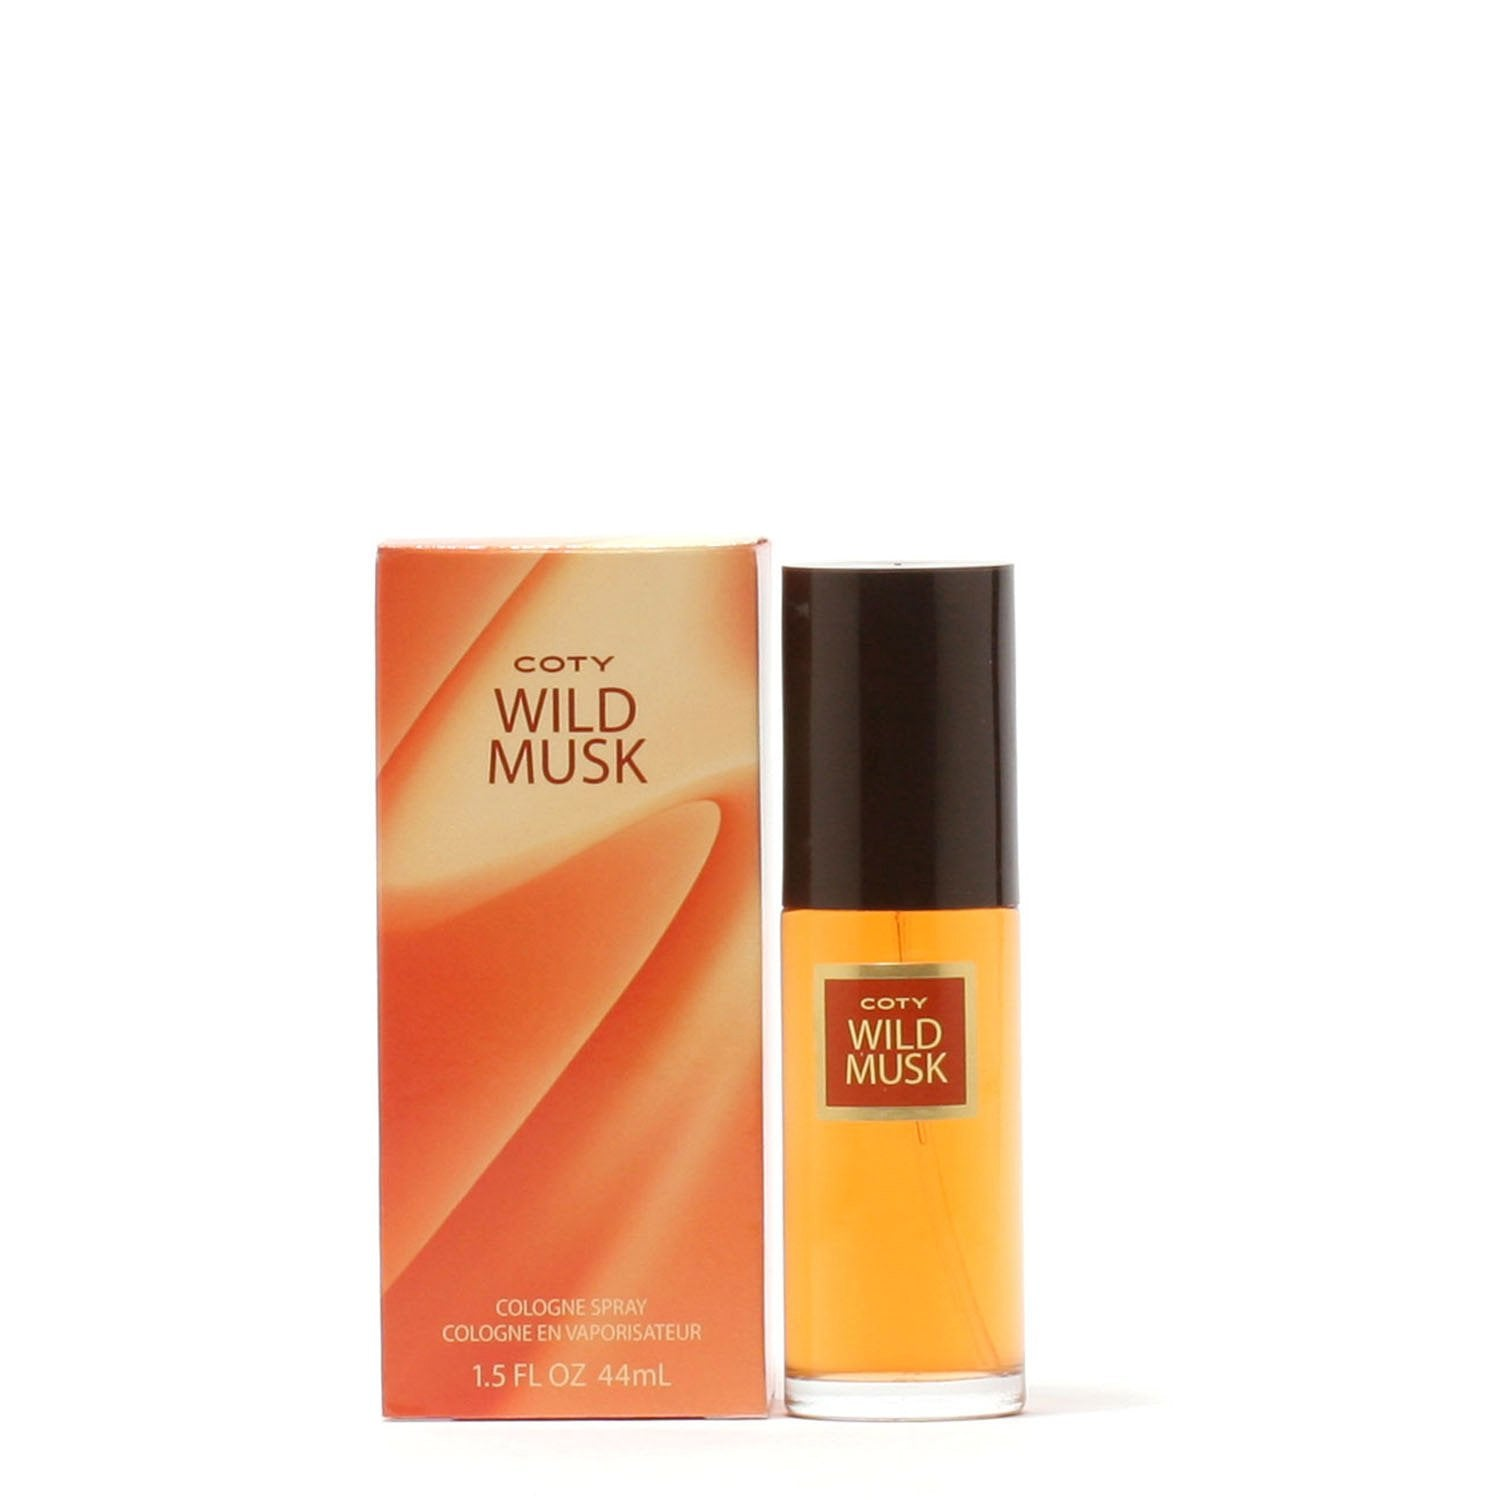 Perfume - COTY WILD MUSK FOR WOMEN - COLOGNE SPRAY, 1.5 OZ